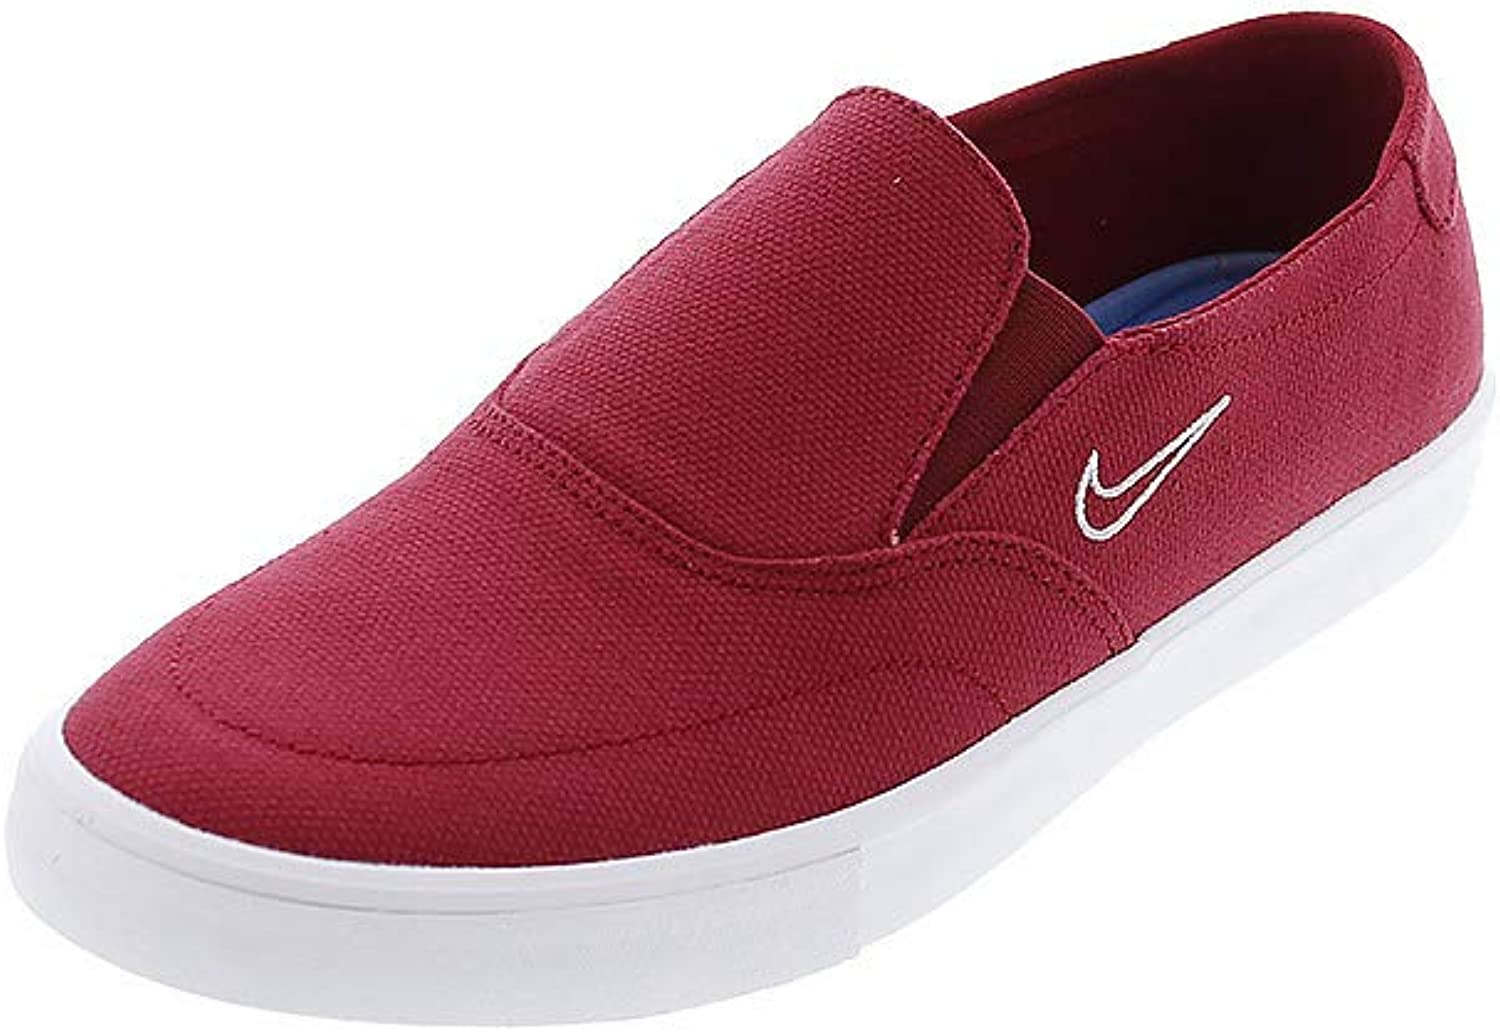 Nike Men's Sb Portmore Ii SLR SLP C Low-Top Sneakers